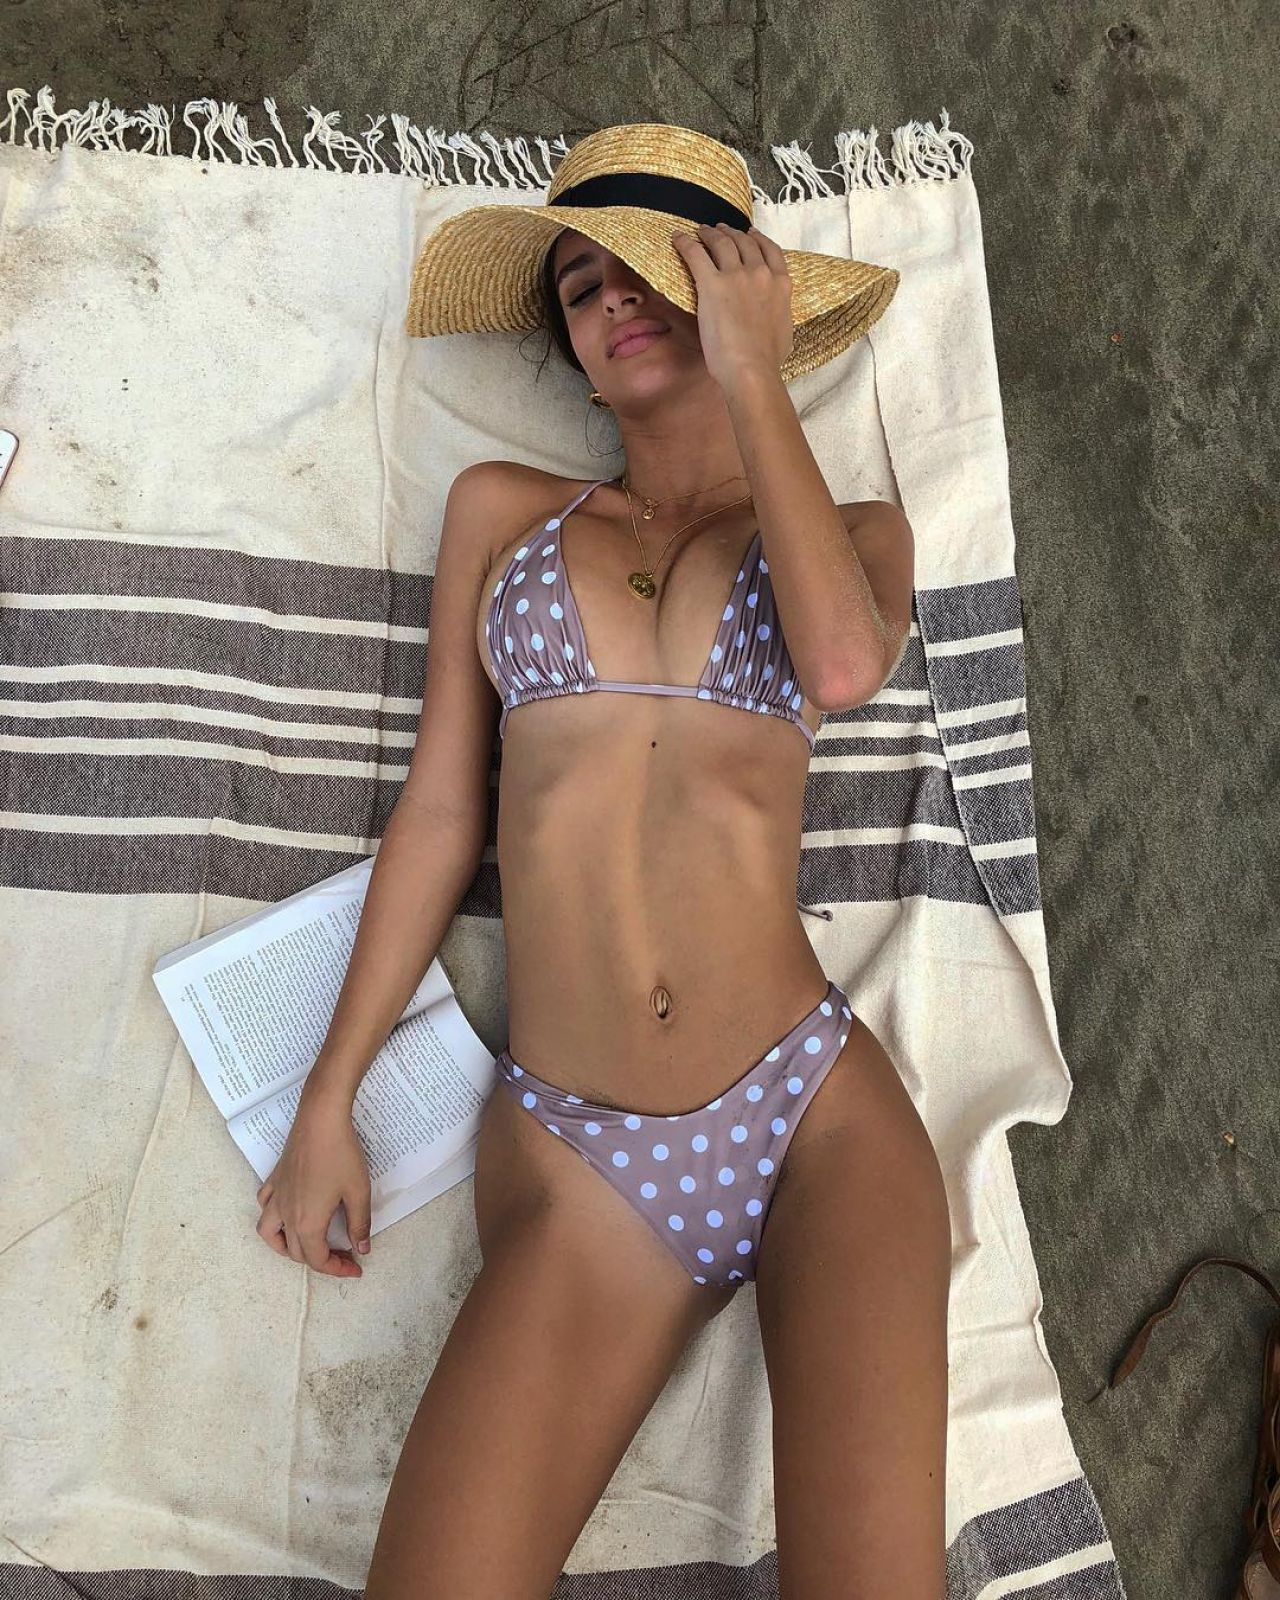 Emily Ratajkowski in Bikini and Swimsuit Social Media Pic 4 of 35